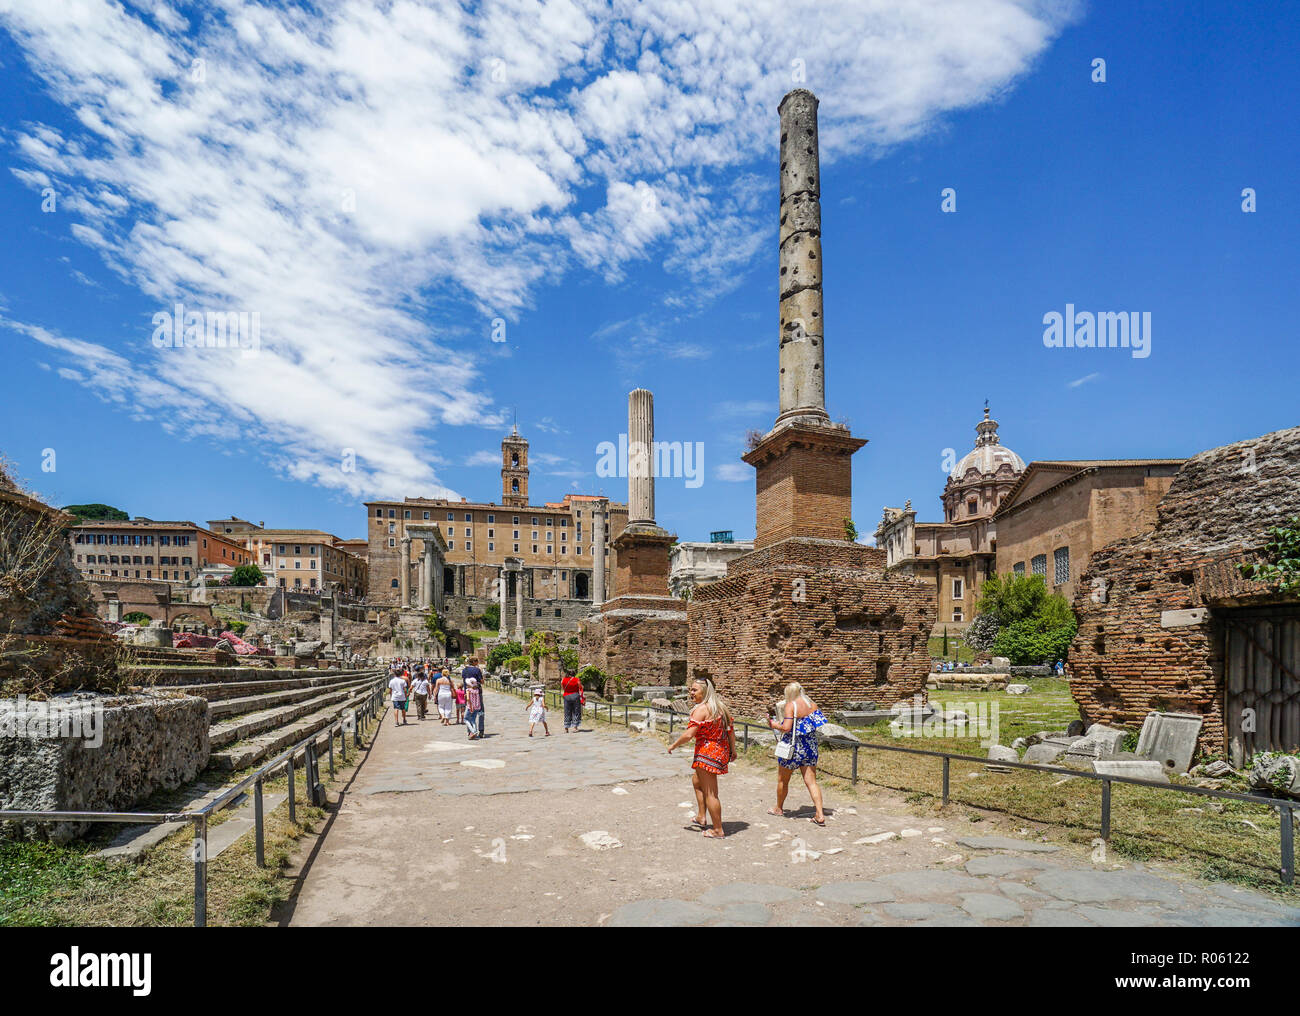 ruins of the ancient city of Rome allong Via Sacra at the Roman Forum, Rome, Italy - Stock Image